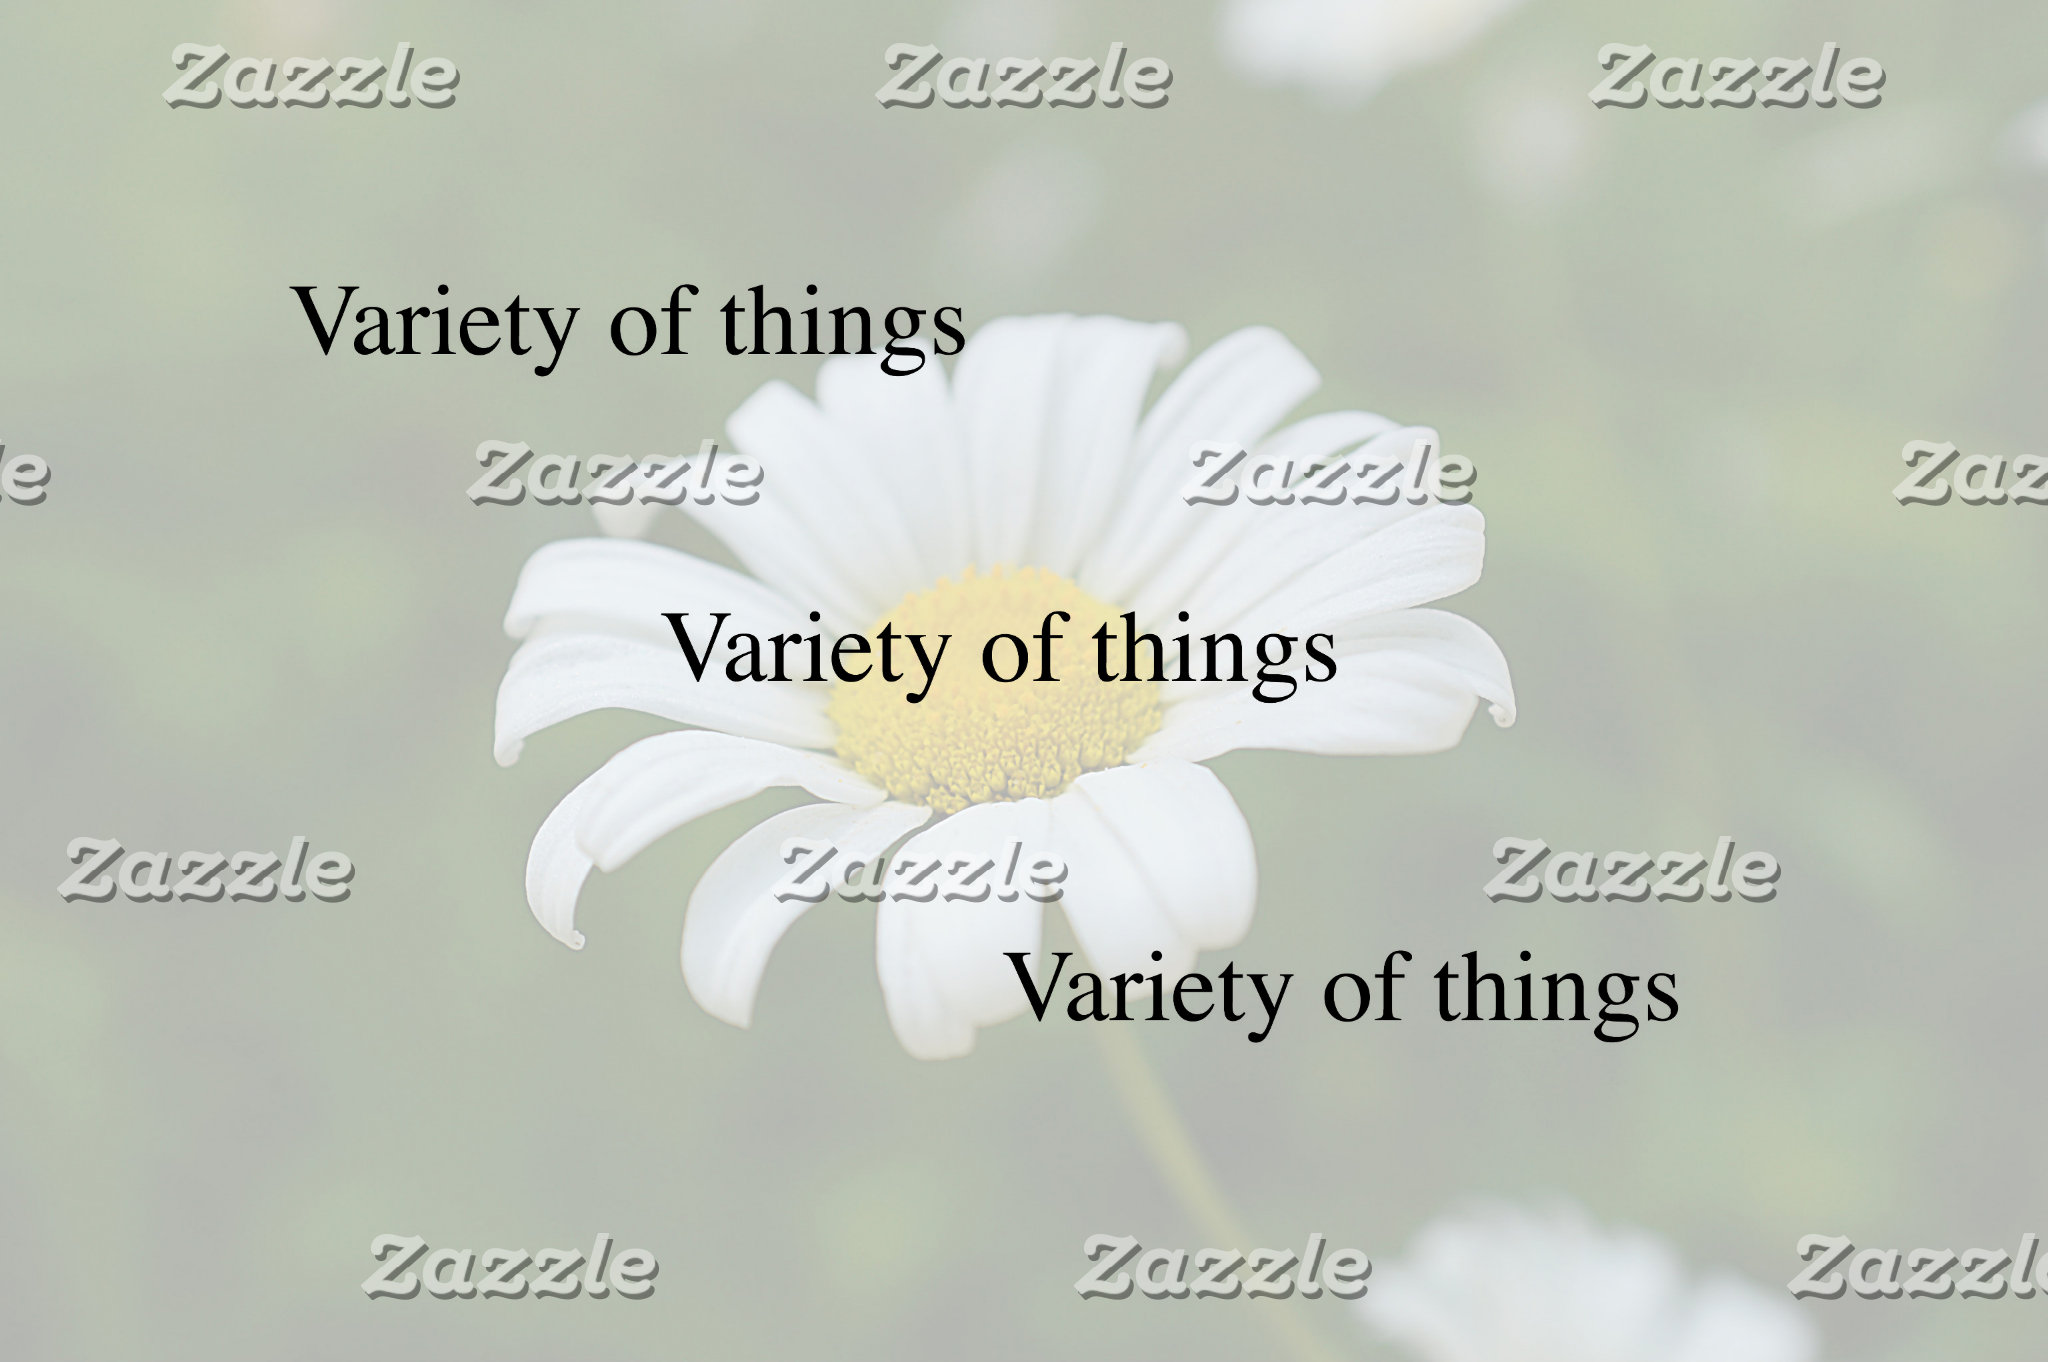 Variety of things